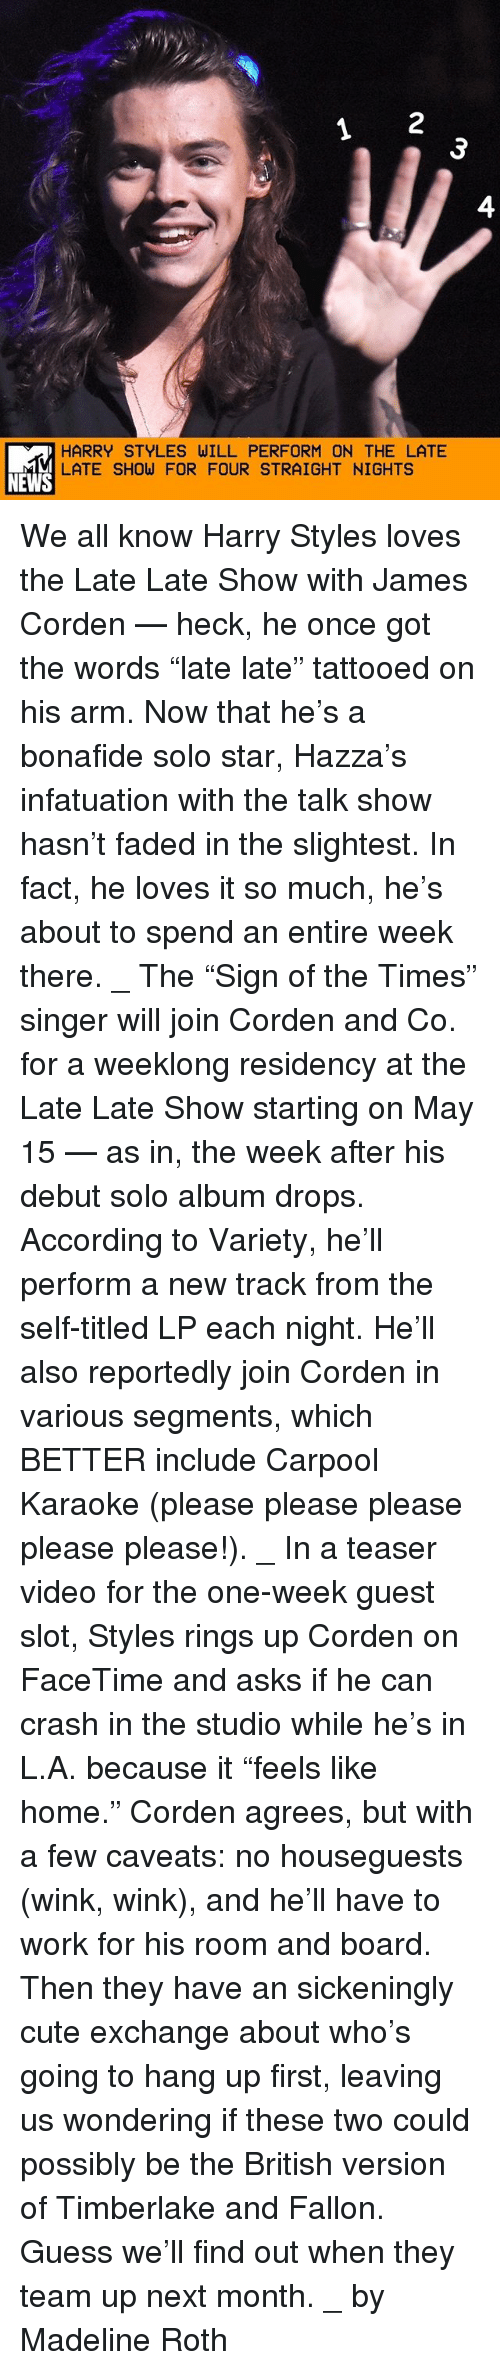 """Cute, Facetime, and Memes: HARRY STYLES WILL PERFORM ON THE LATE  LATE SHOW FOR FOUR STRAIGHT NIGHTS  NEWS We all know Harry Styles loves the Late Late Show with James Corden — heck, he once got the words """"late late"""" tattooed on his arm. Now that he's a bonafide solo star, Hazza's infatuation with the talk show hasn't faded in the slightest. In fact, he loves it so much, he's about to spend an entire week there. _ The """"Sign of the Times"""" singer will join Corden and Co. for a weeklong residency at the Late Late Show starting on May 15 — as in, the week after his debut solo album drops. According to Variety, he'll perform a new track from the self-titled LP each night. He'll also reportedly join Corden in various segments, which BETTER include Carpool Karaoke (please please please please please!). _ In a teaser video for the one-week guest slot, Styles rings up Corden on FaceTime and asks if he can crash in the studio while he's in L.A. because it """"feels like home."""" Corden agrees, but with a few caveats: no houseguests (wink, wink), and he'll have to work for his room and board. Then they have an sickeningly cute exchange about who's going to hang up first, leaving us wondering if these two could possibly be the British version of Timberlake and Fallon. Guess we'll find out when they team up next month. _ by Madeline Roth"""